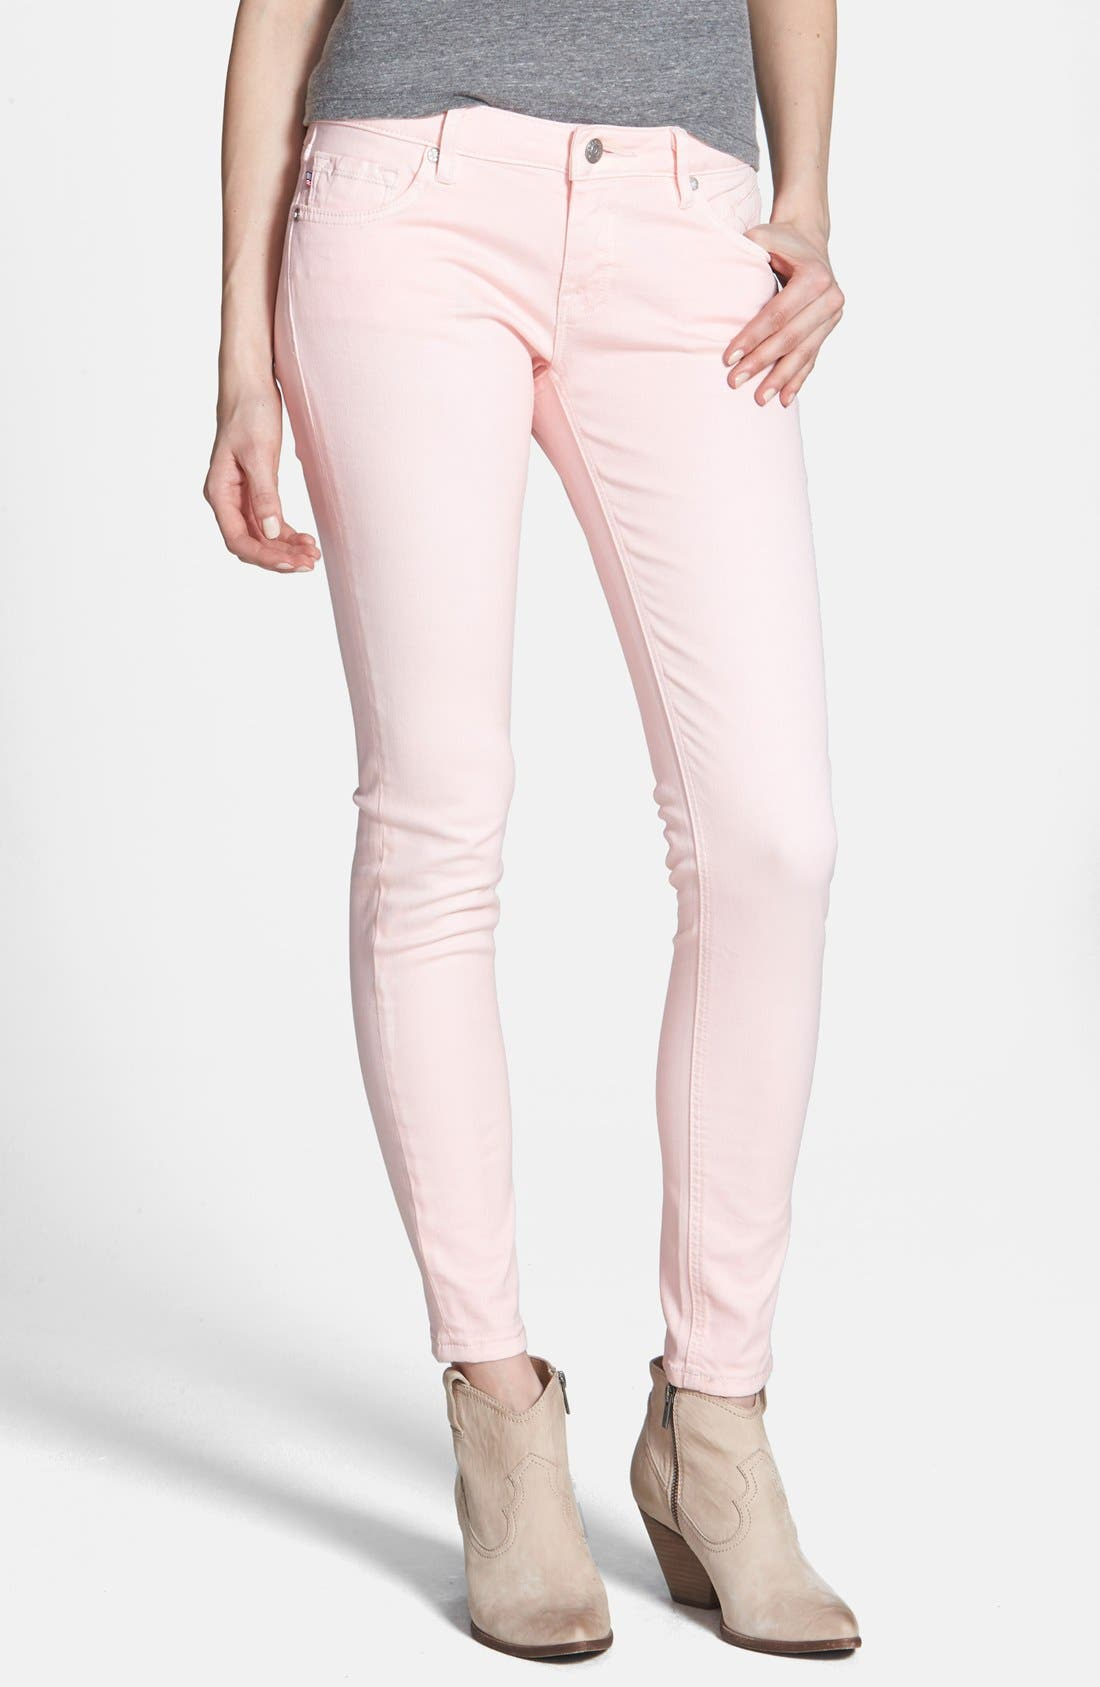 Alternate Image 1 Selected - Vigoss Skinny Ankle Jeans (Light Pink) (Juniors) (Online Only)